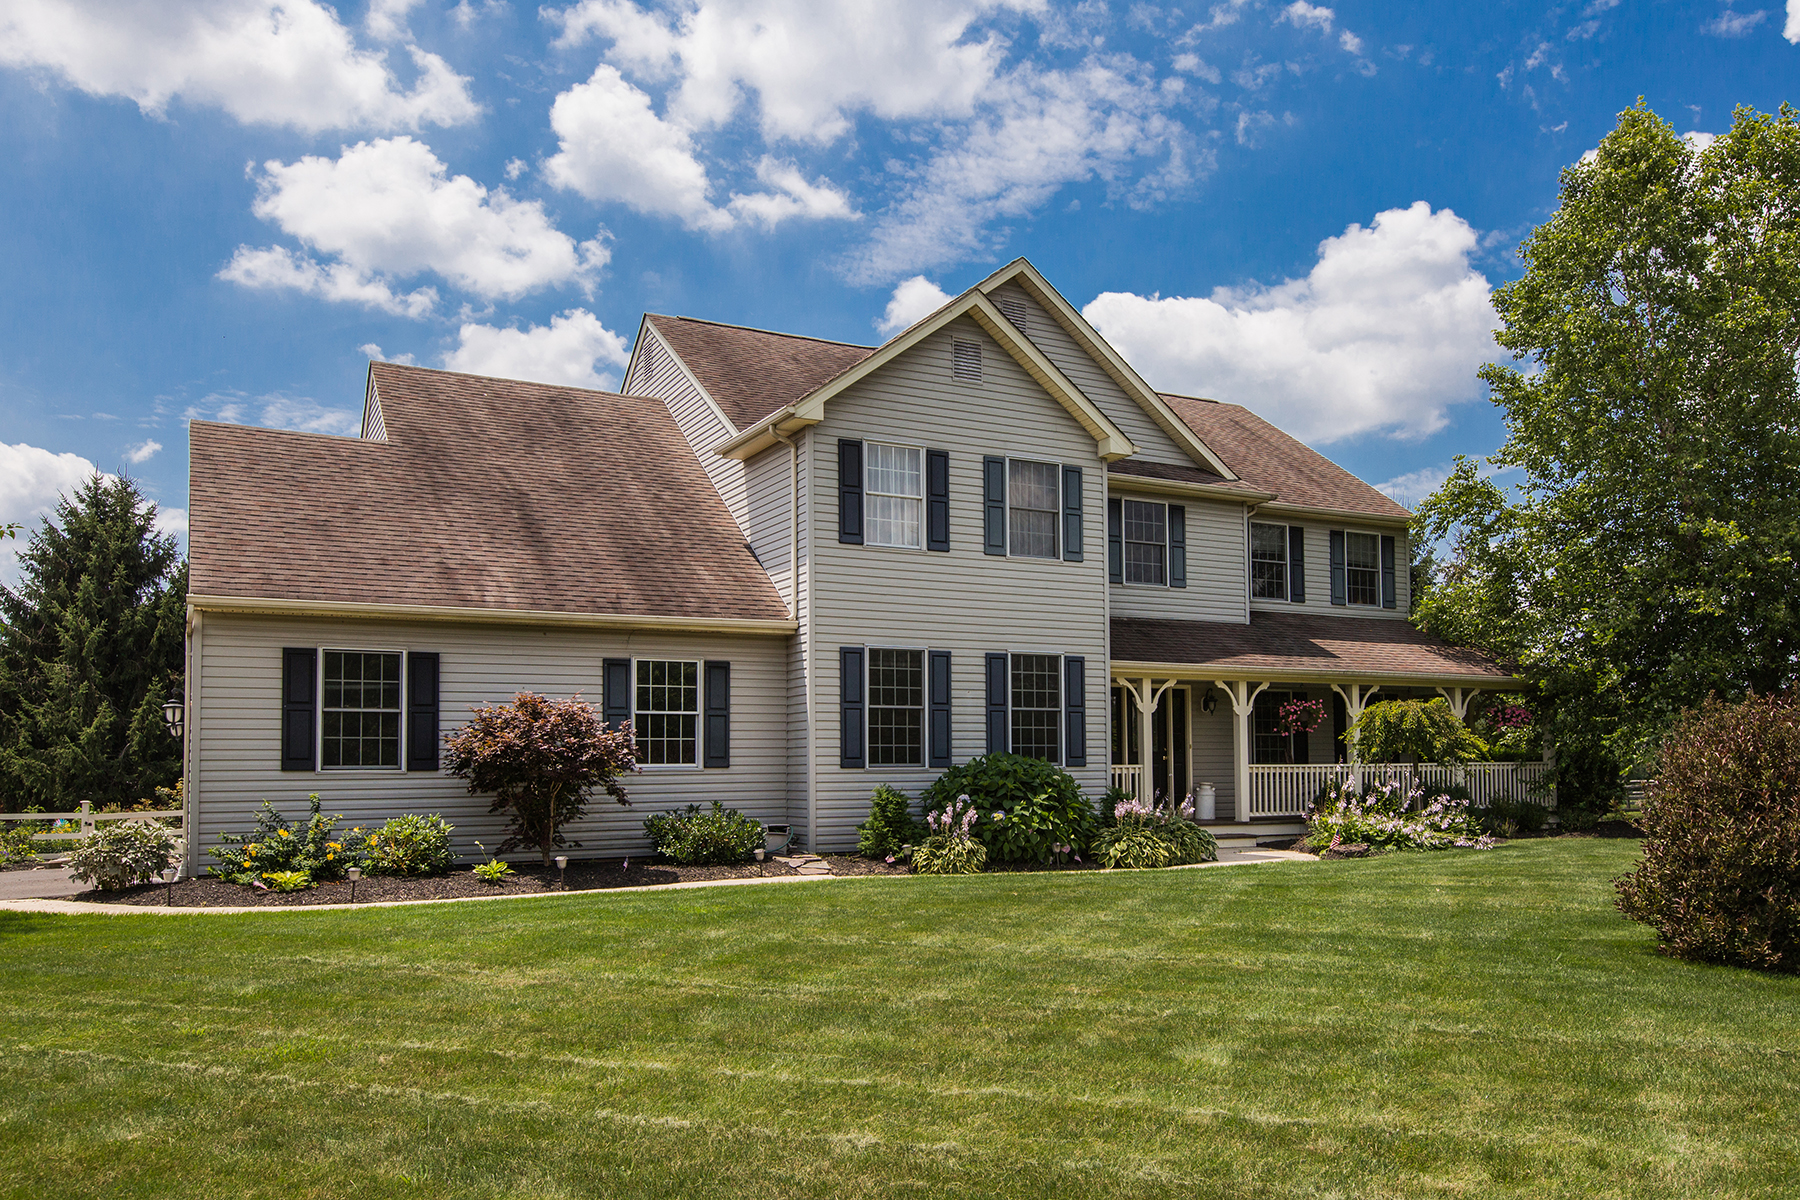 Single Family Home for Sale at New Hope, Pa 6499 Middleton Lane New Hope, Pennsylvania 18938 United States